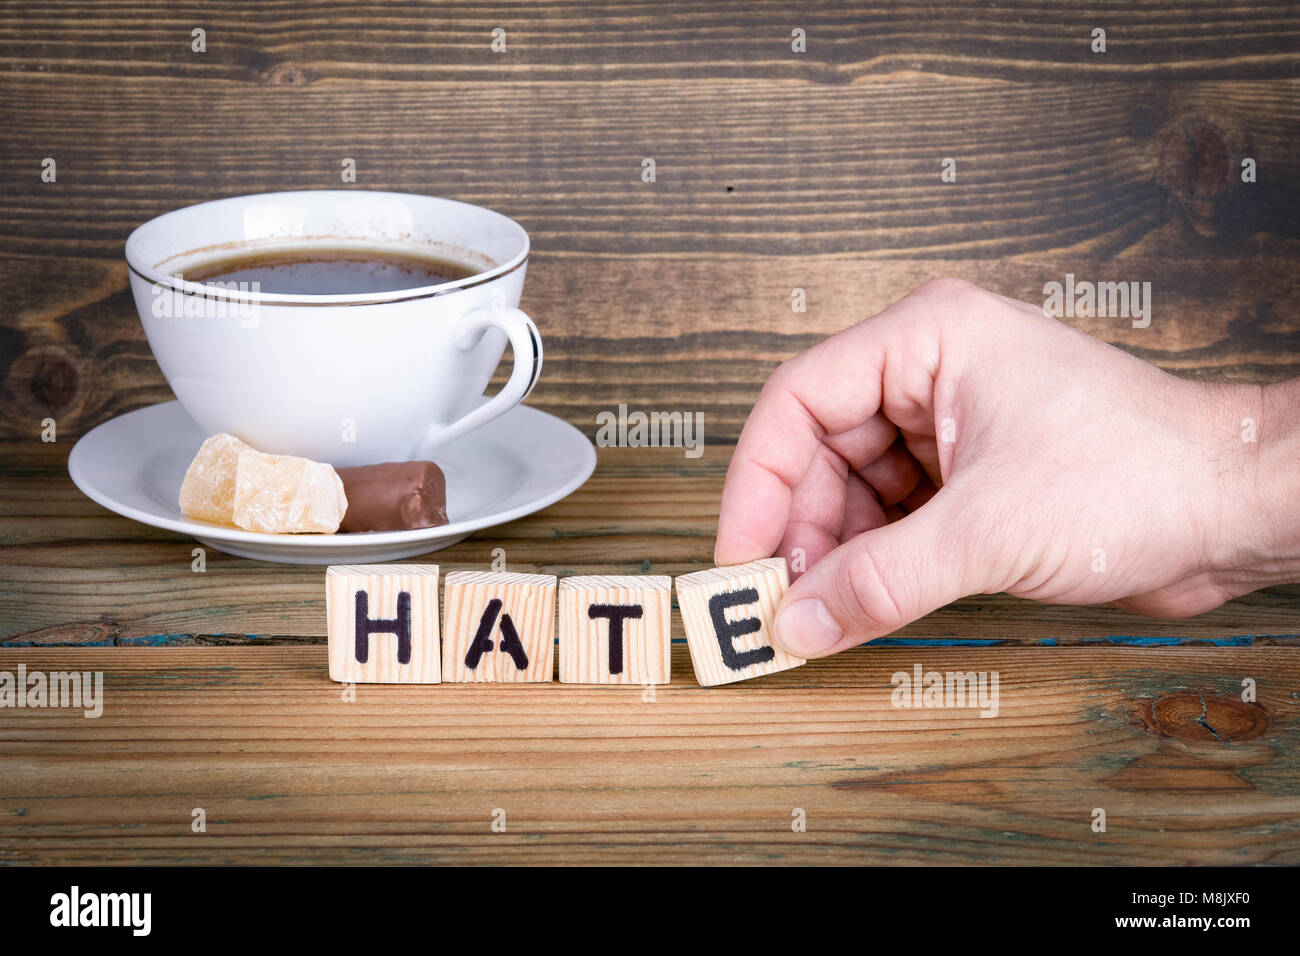 Hate. Wooden letters on the office desk, informative and communication background - Stock Image